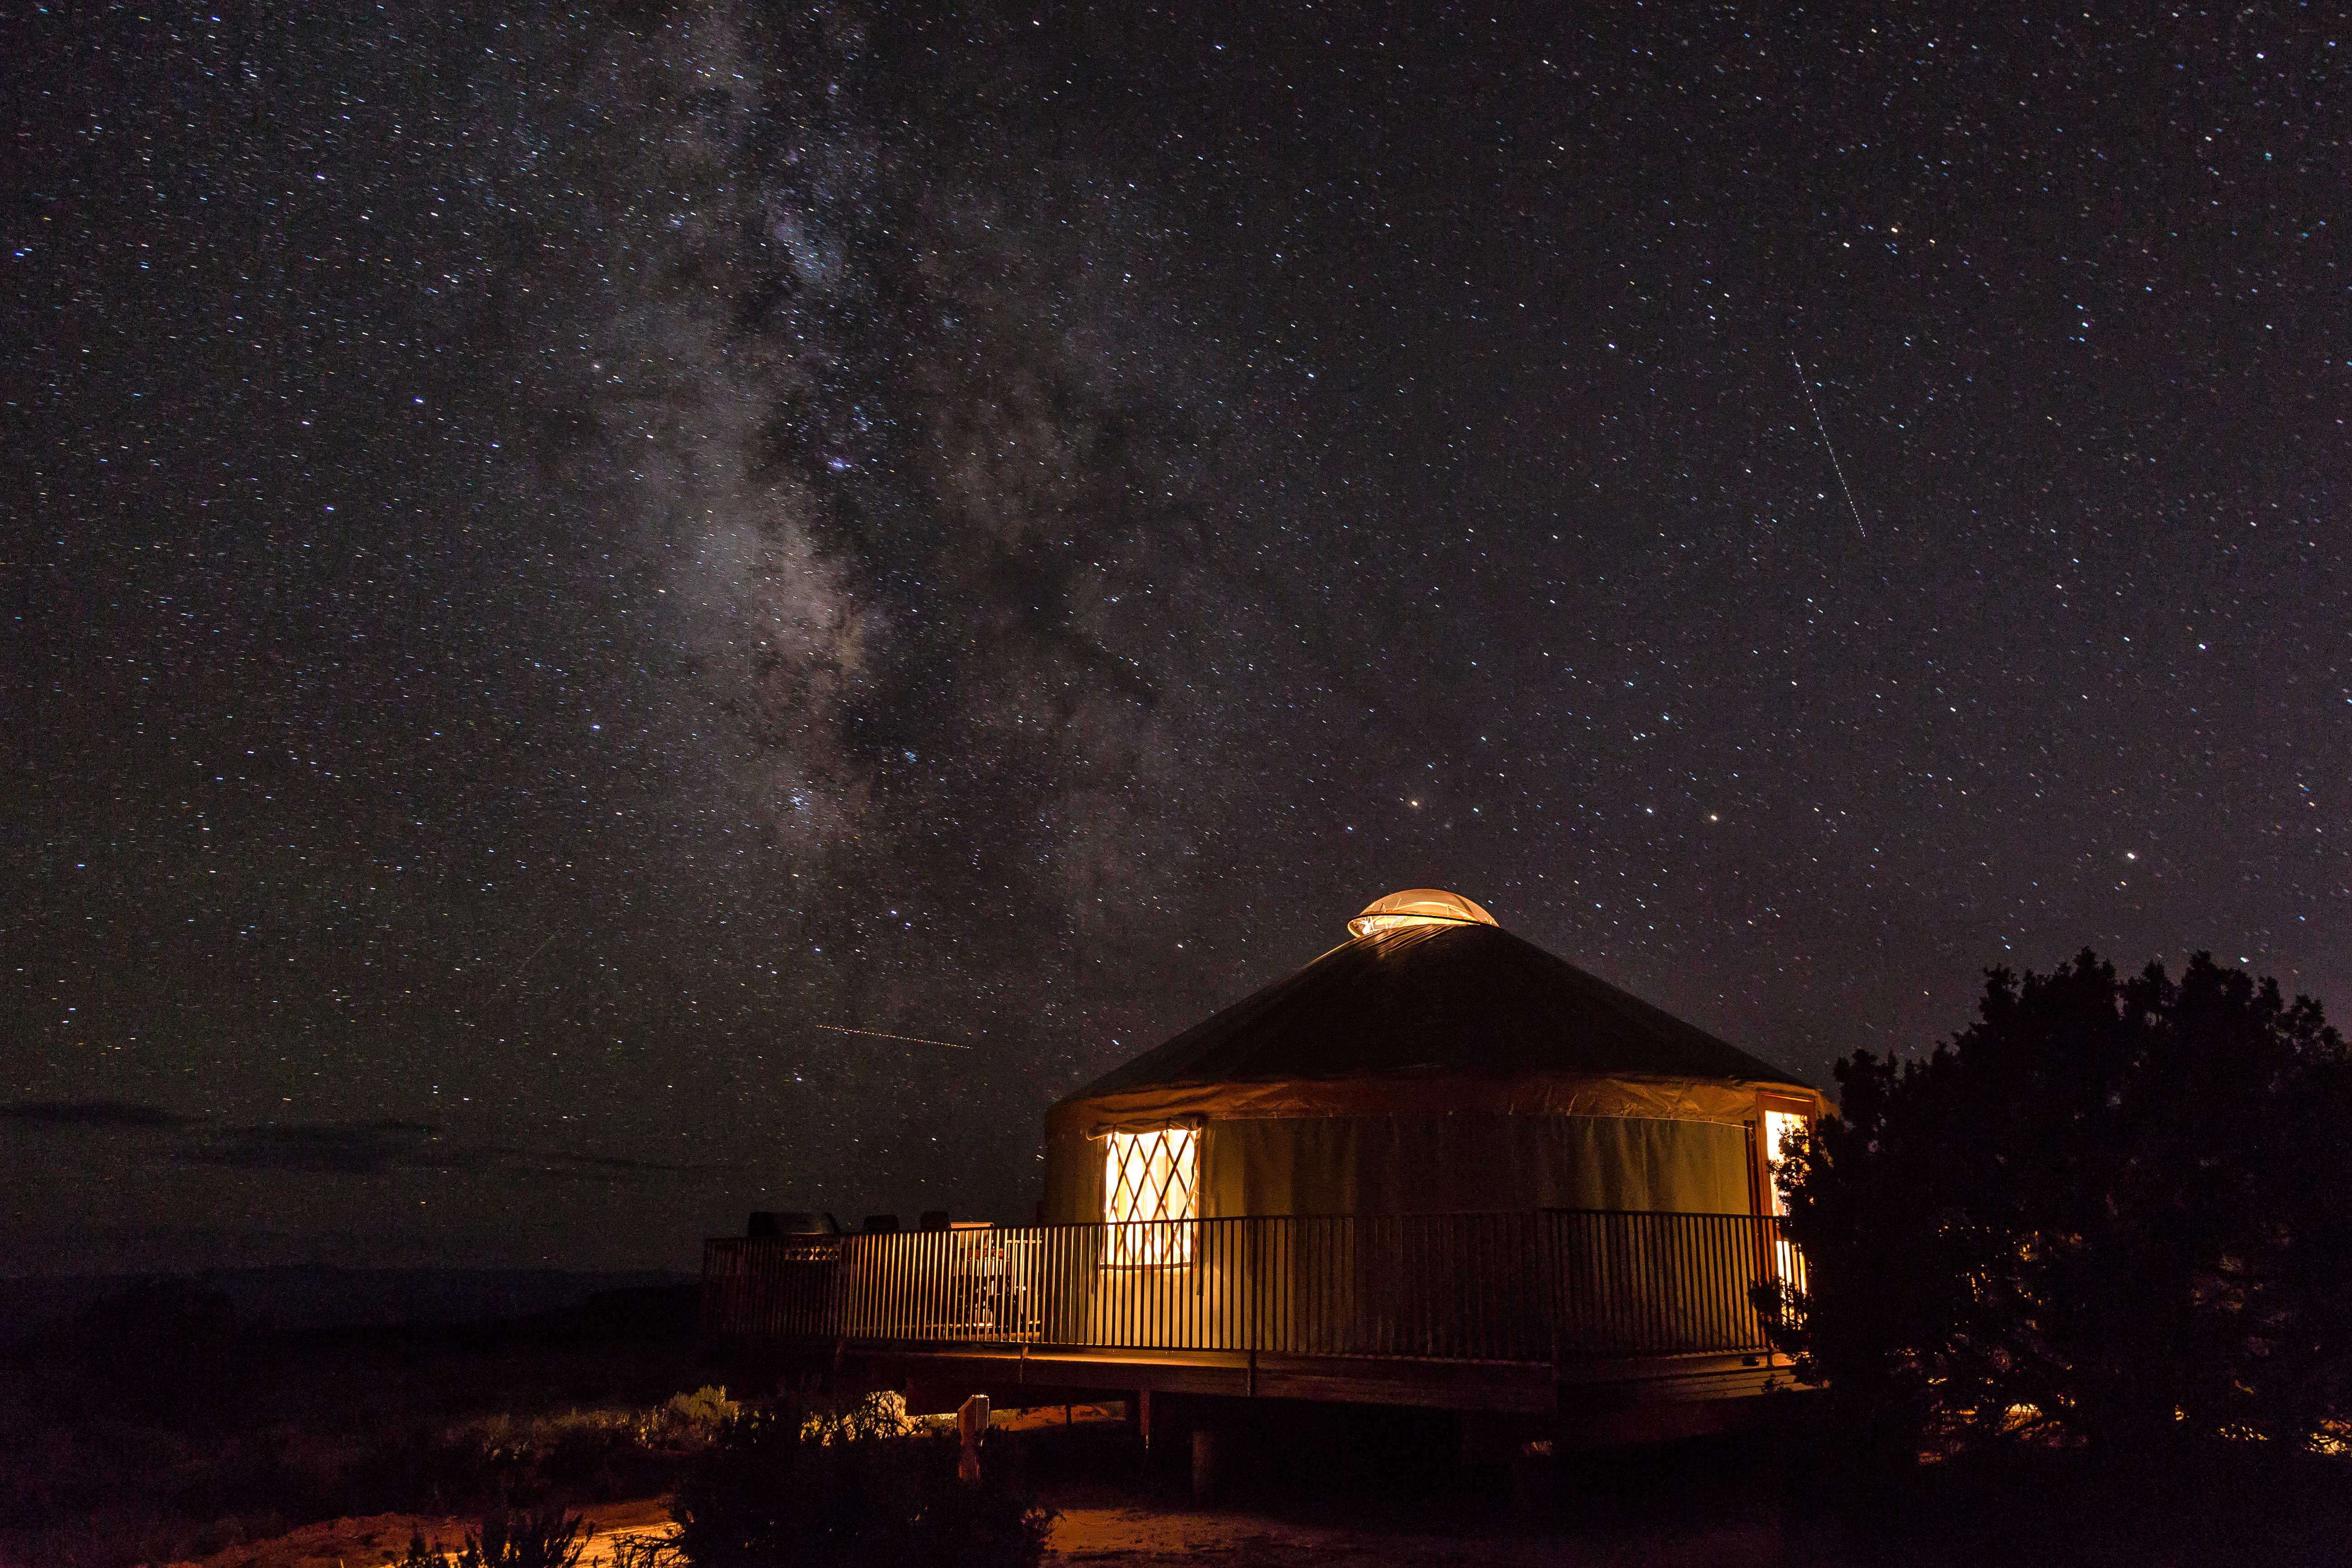 Milky Way over yurts at Dead Horse Point. Image: Brett Edge